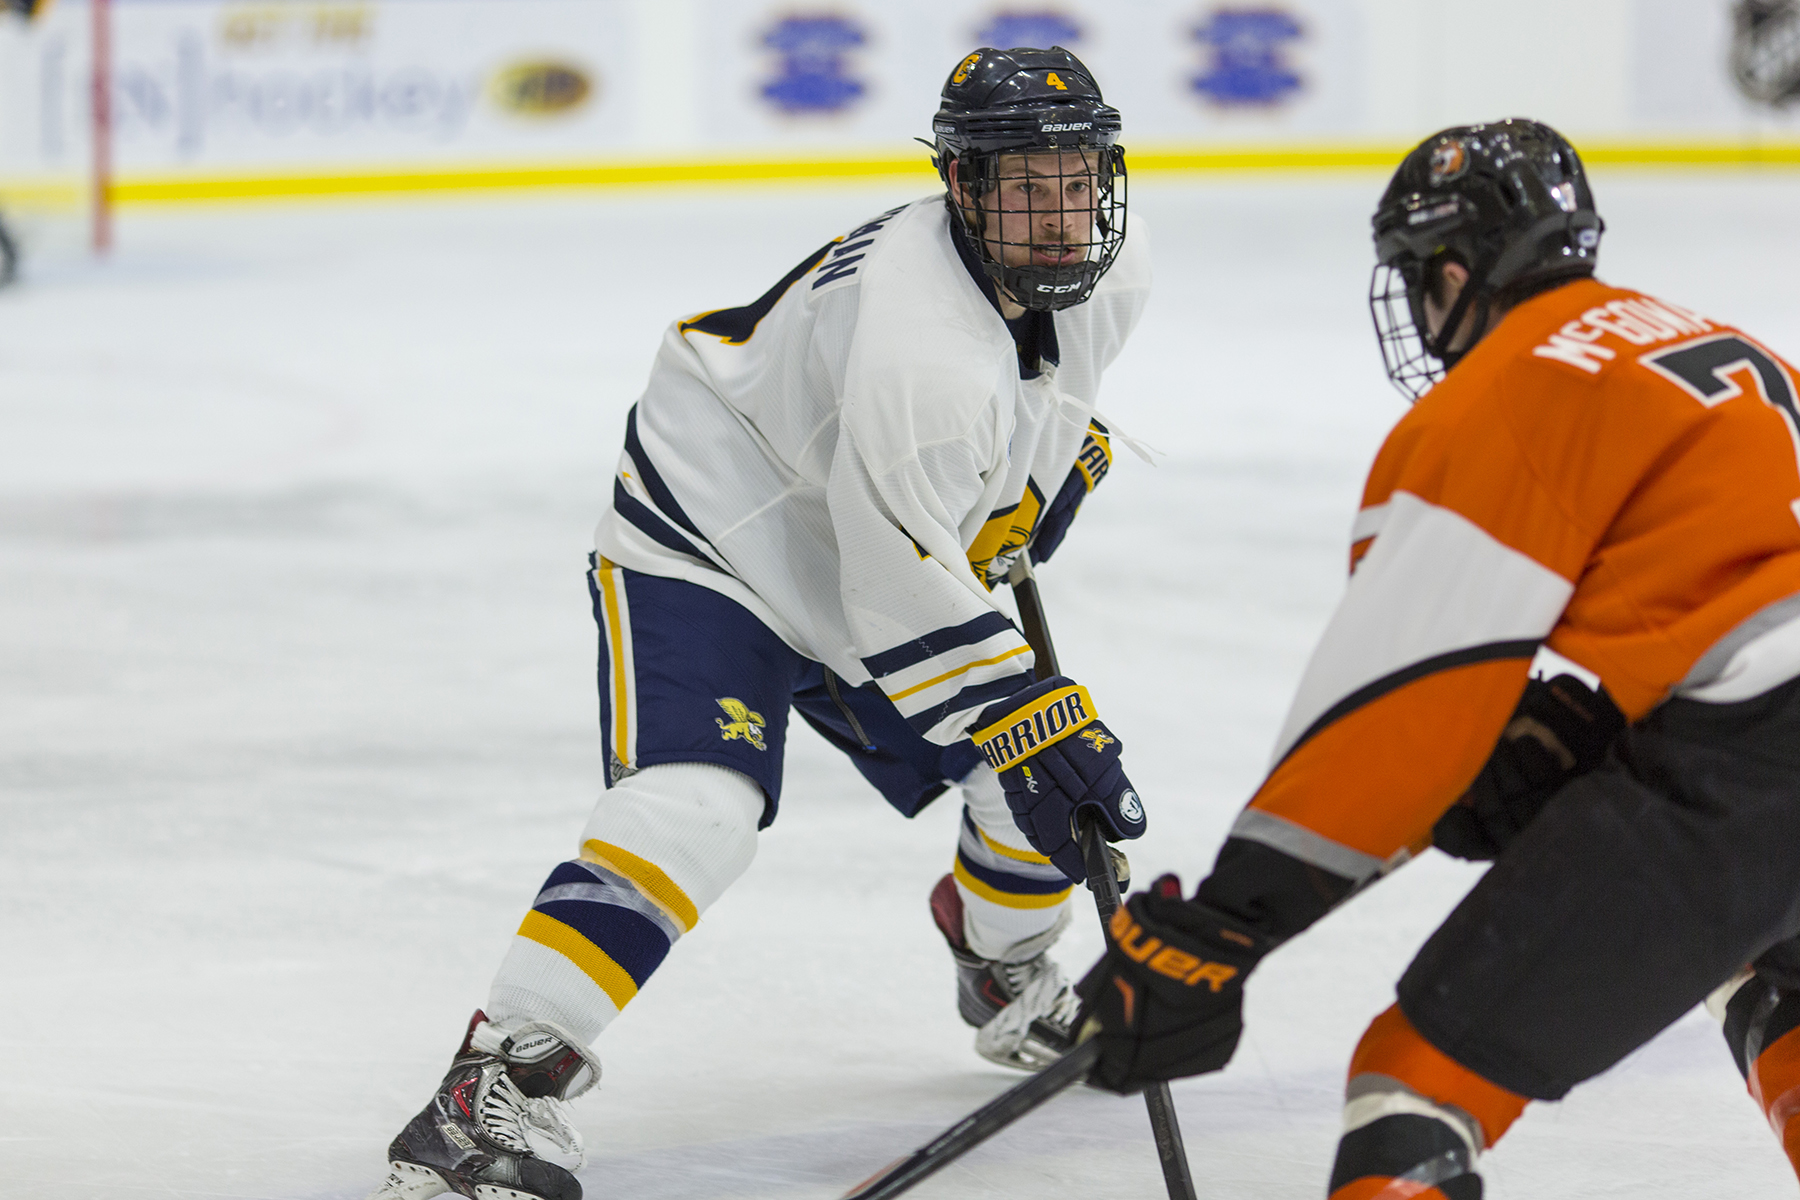 Geoff Fortman scored the OT game-winner for Canisius against Alaska.